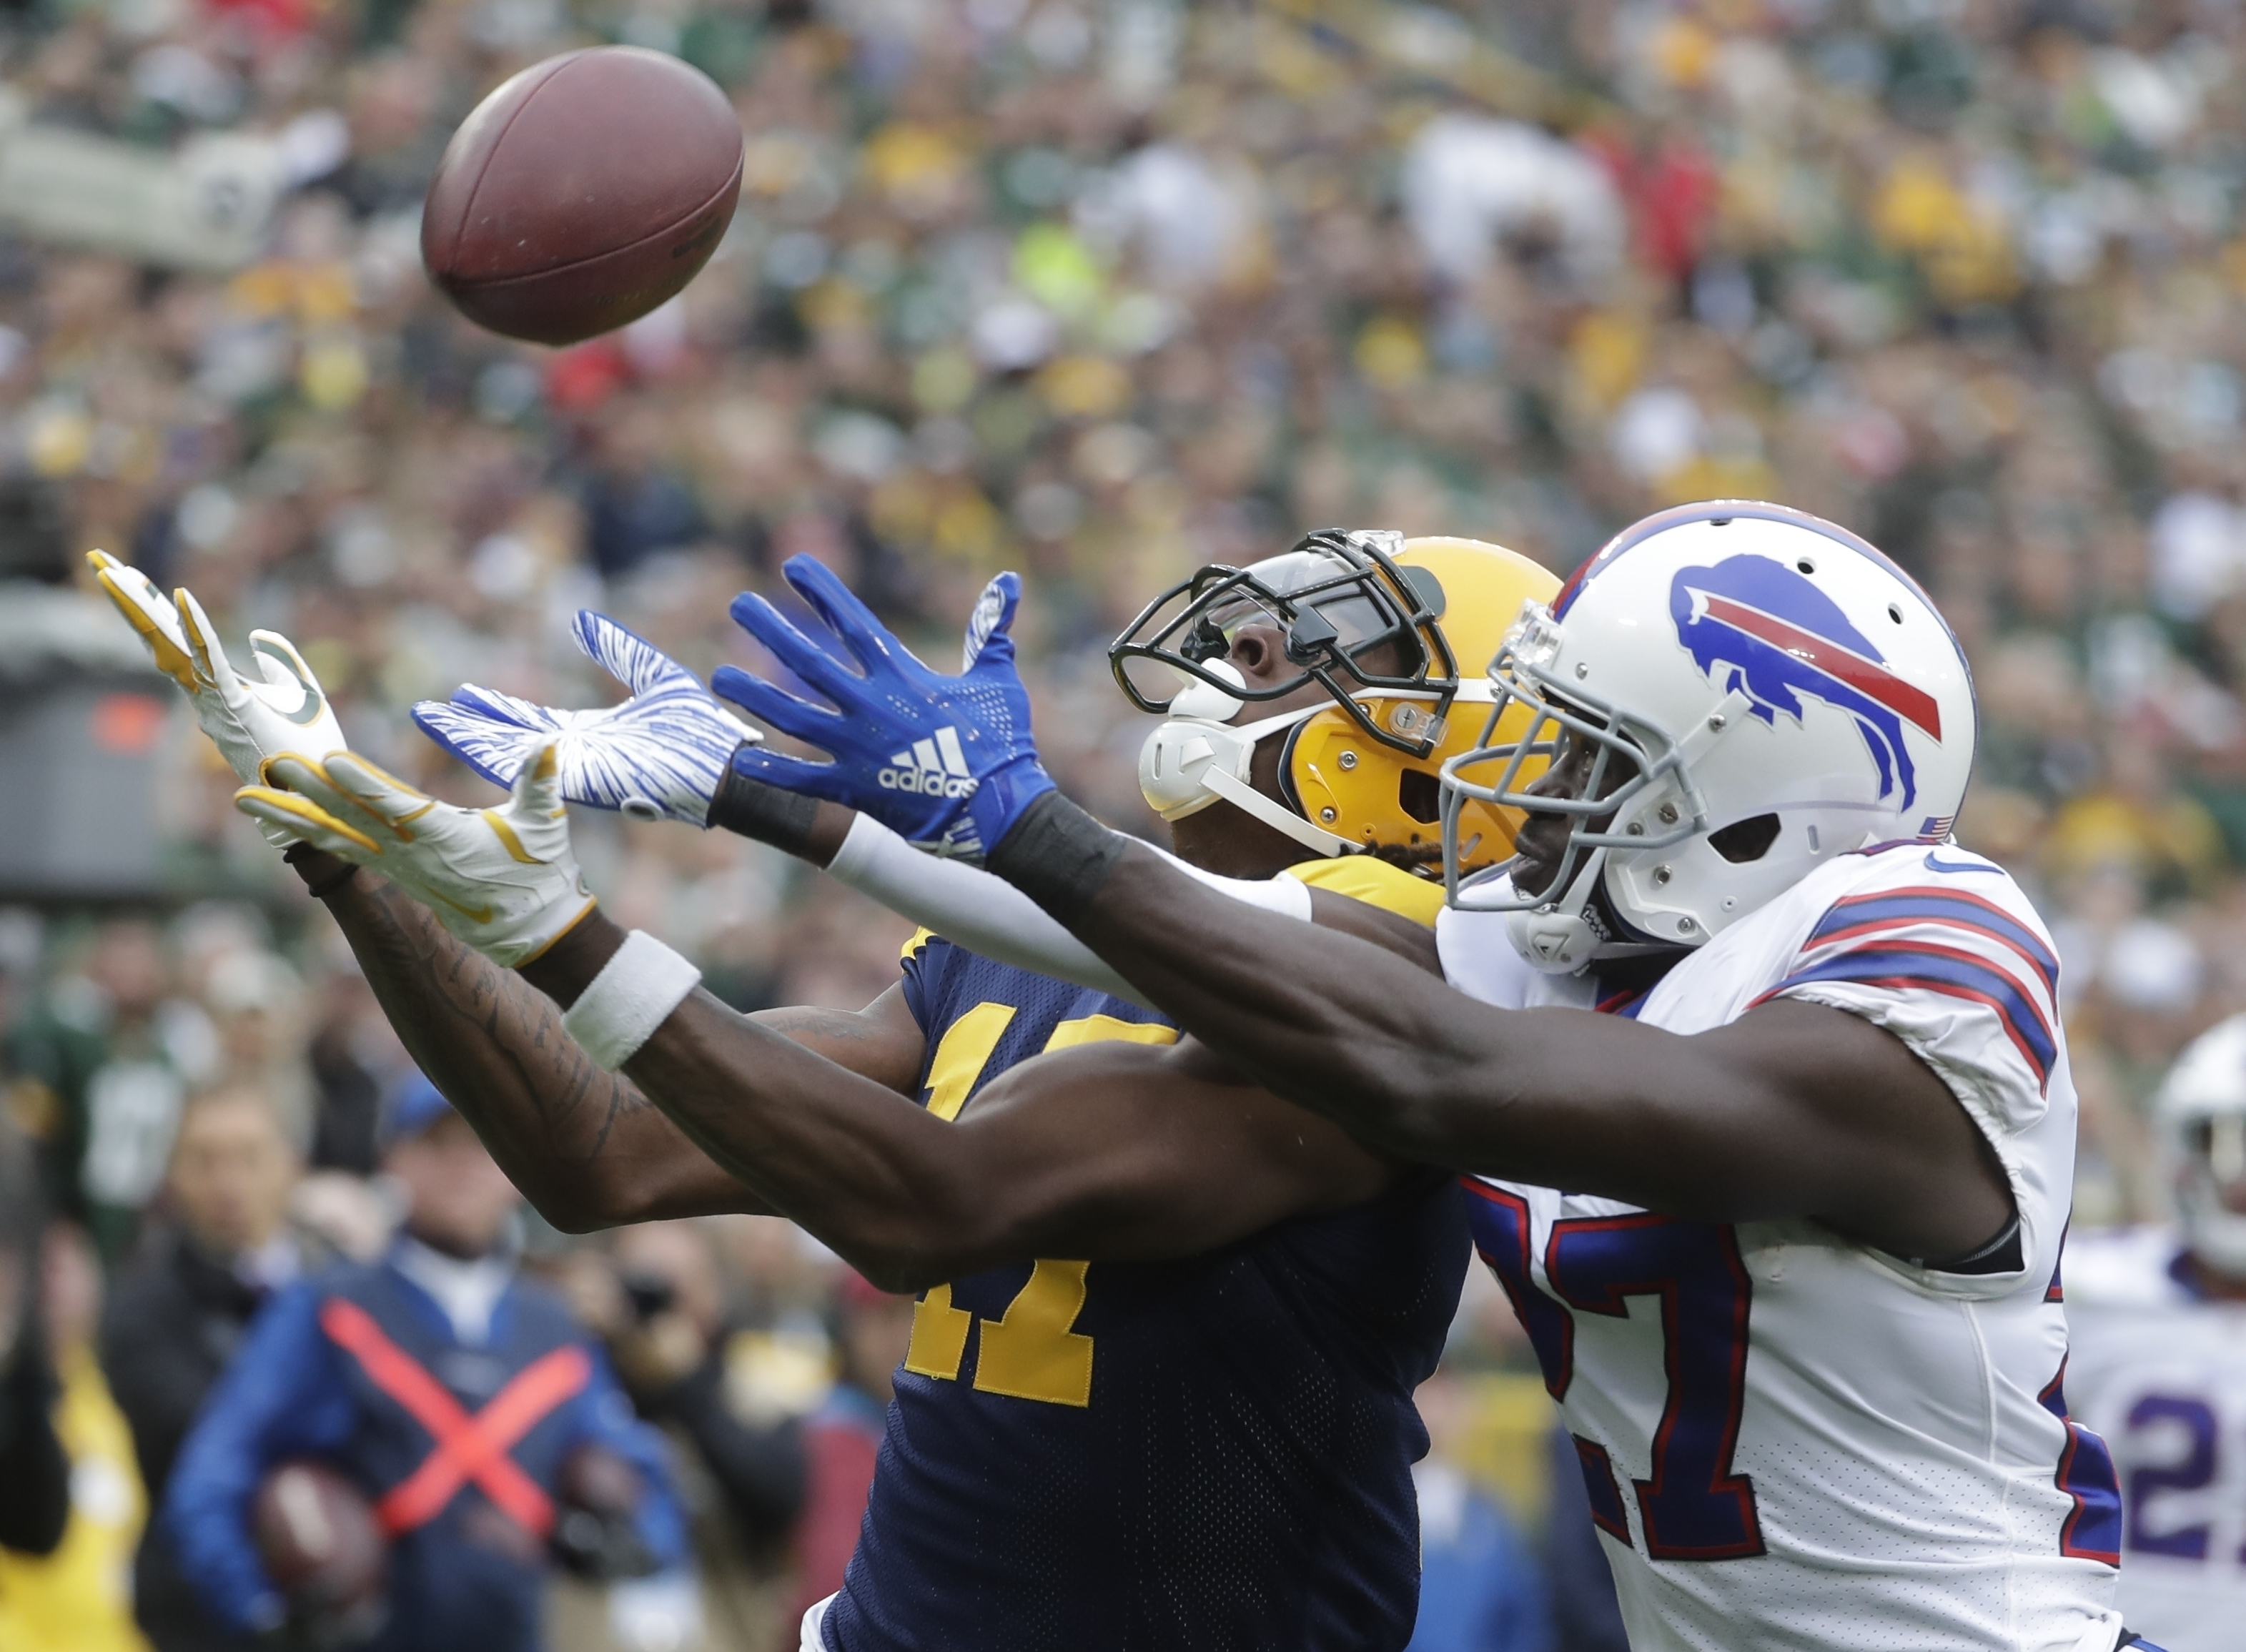 White has plenty weighing on him as Bills prepare for Texans